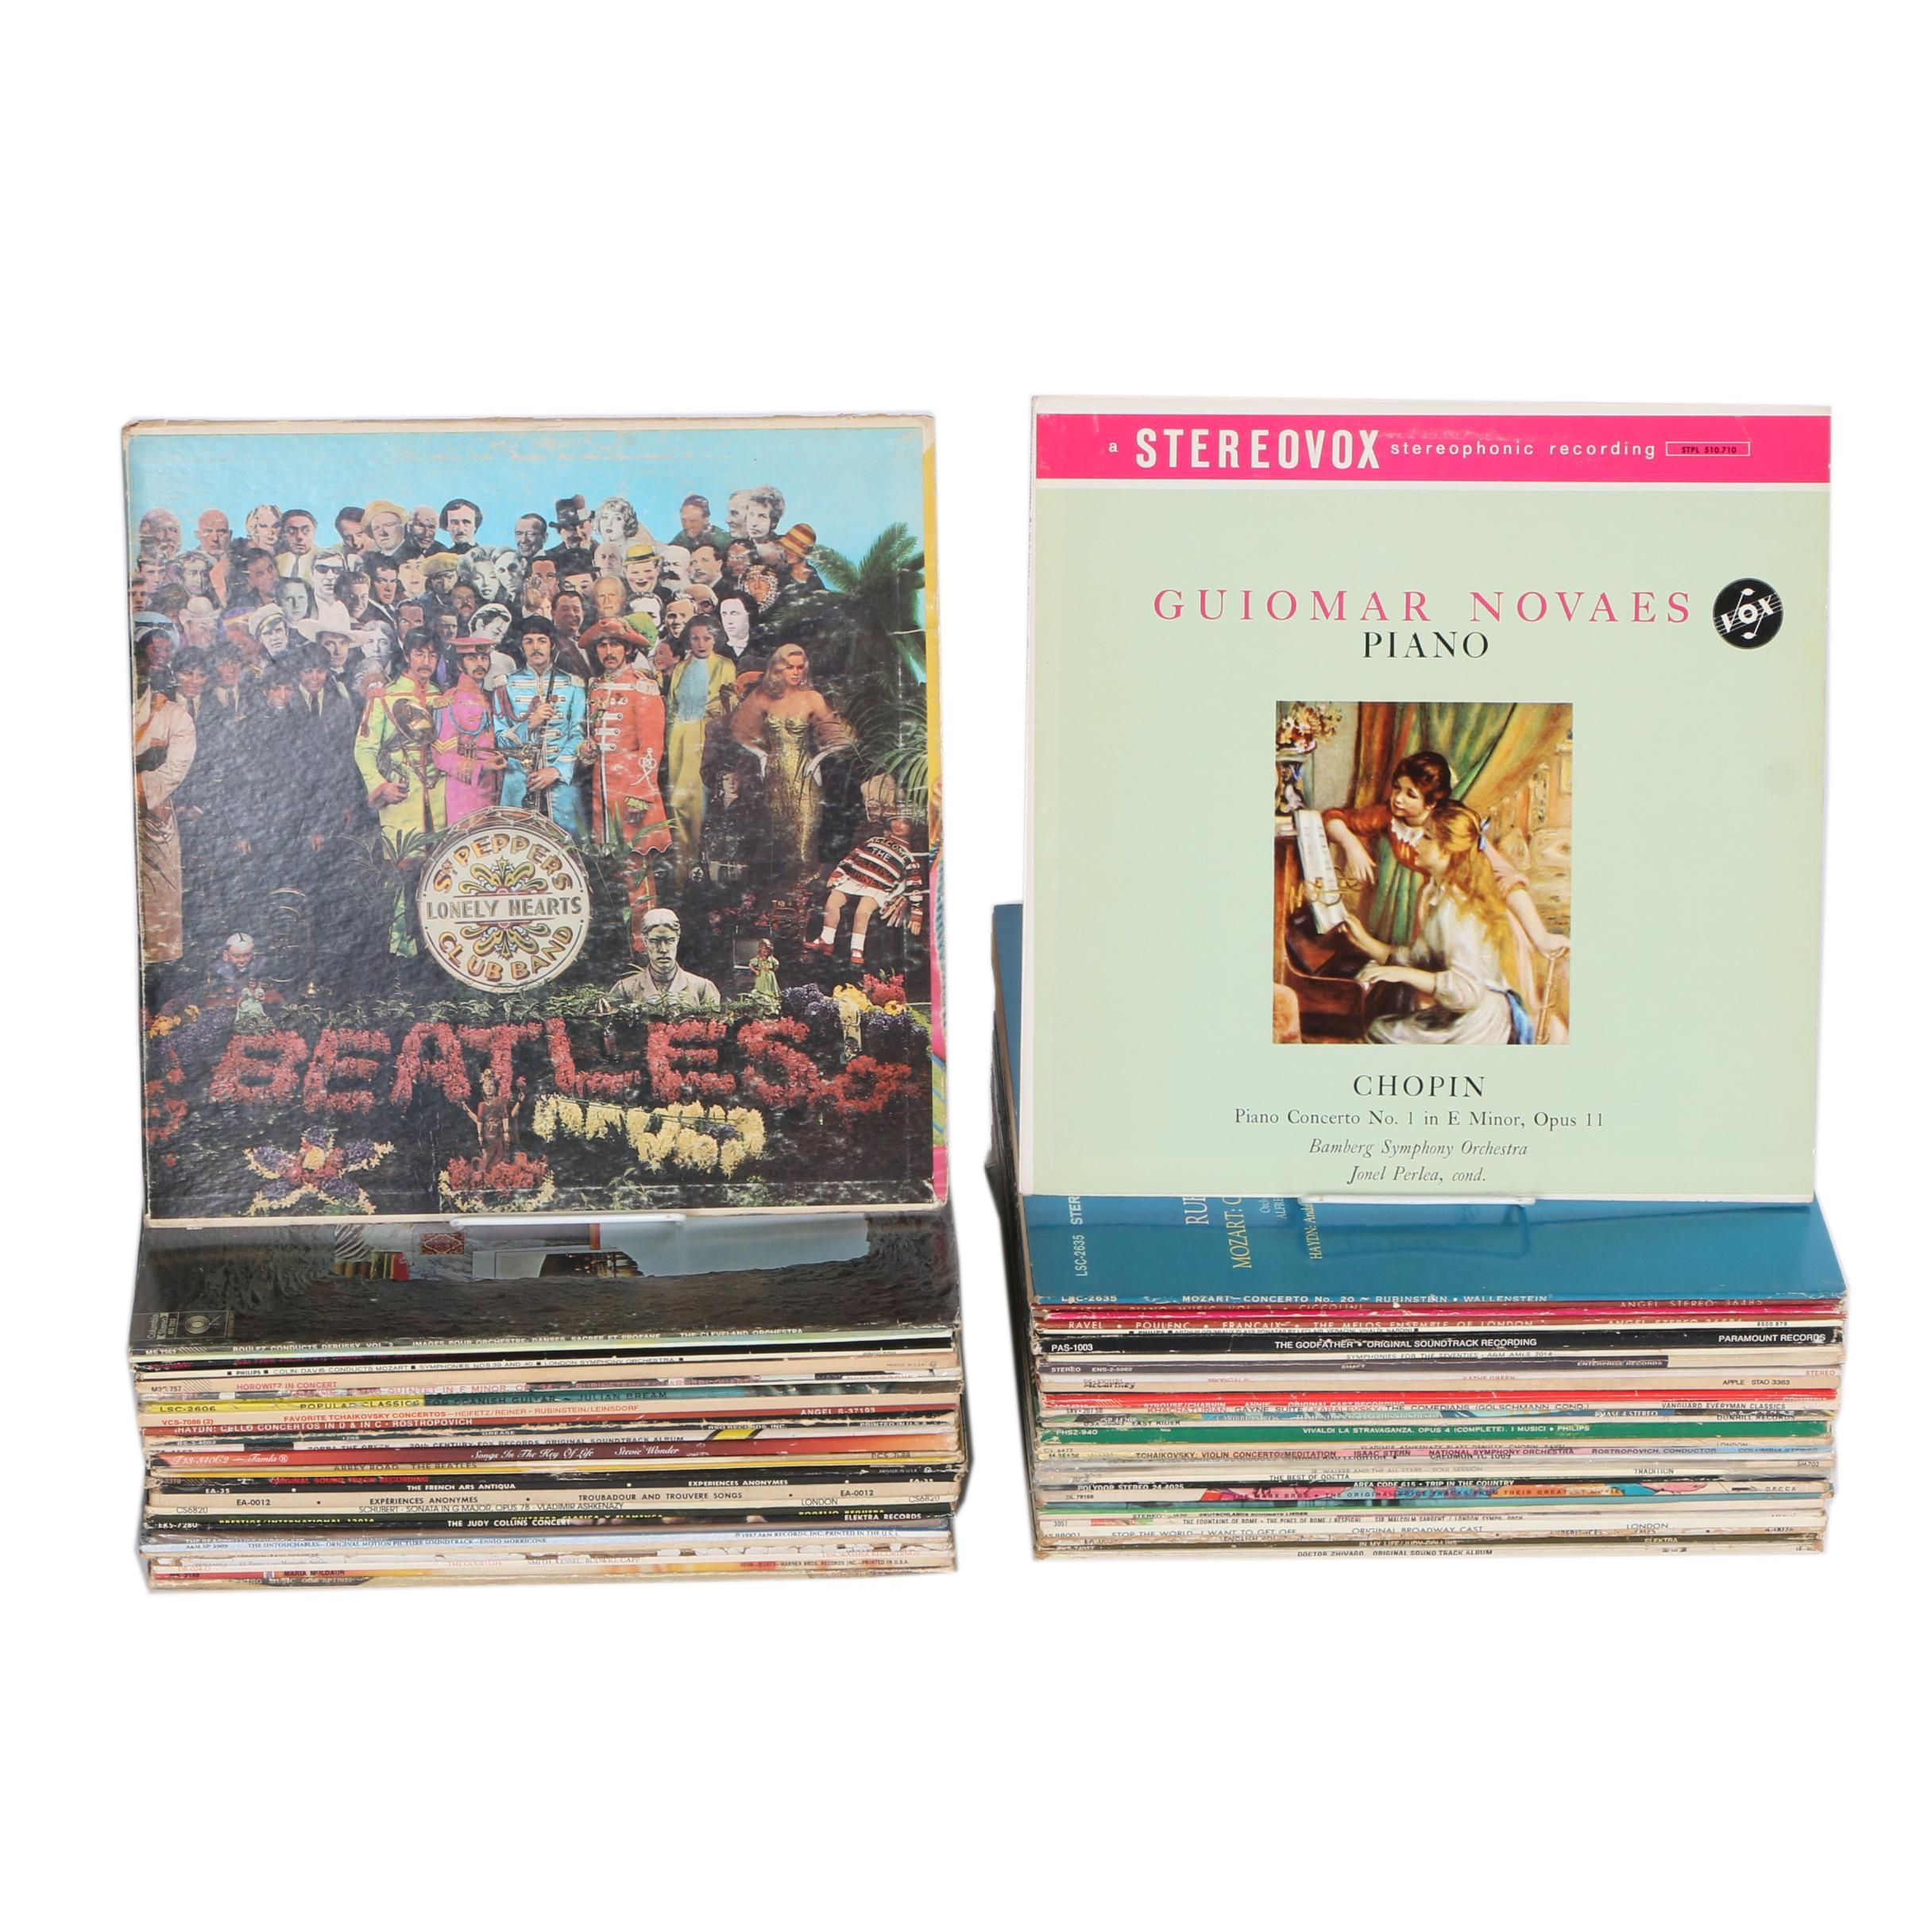 The Beatles, Ennio Morricone, Judy Collins And More Pop, Classical, Jazz, LPs